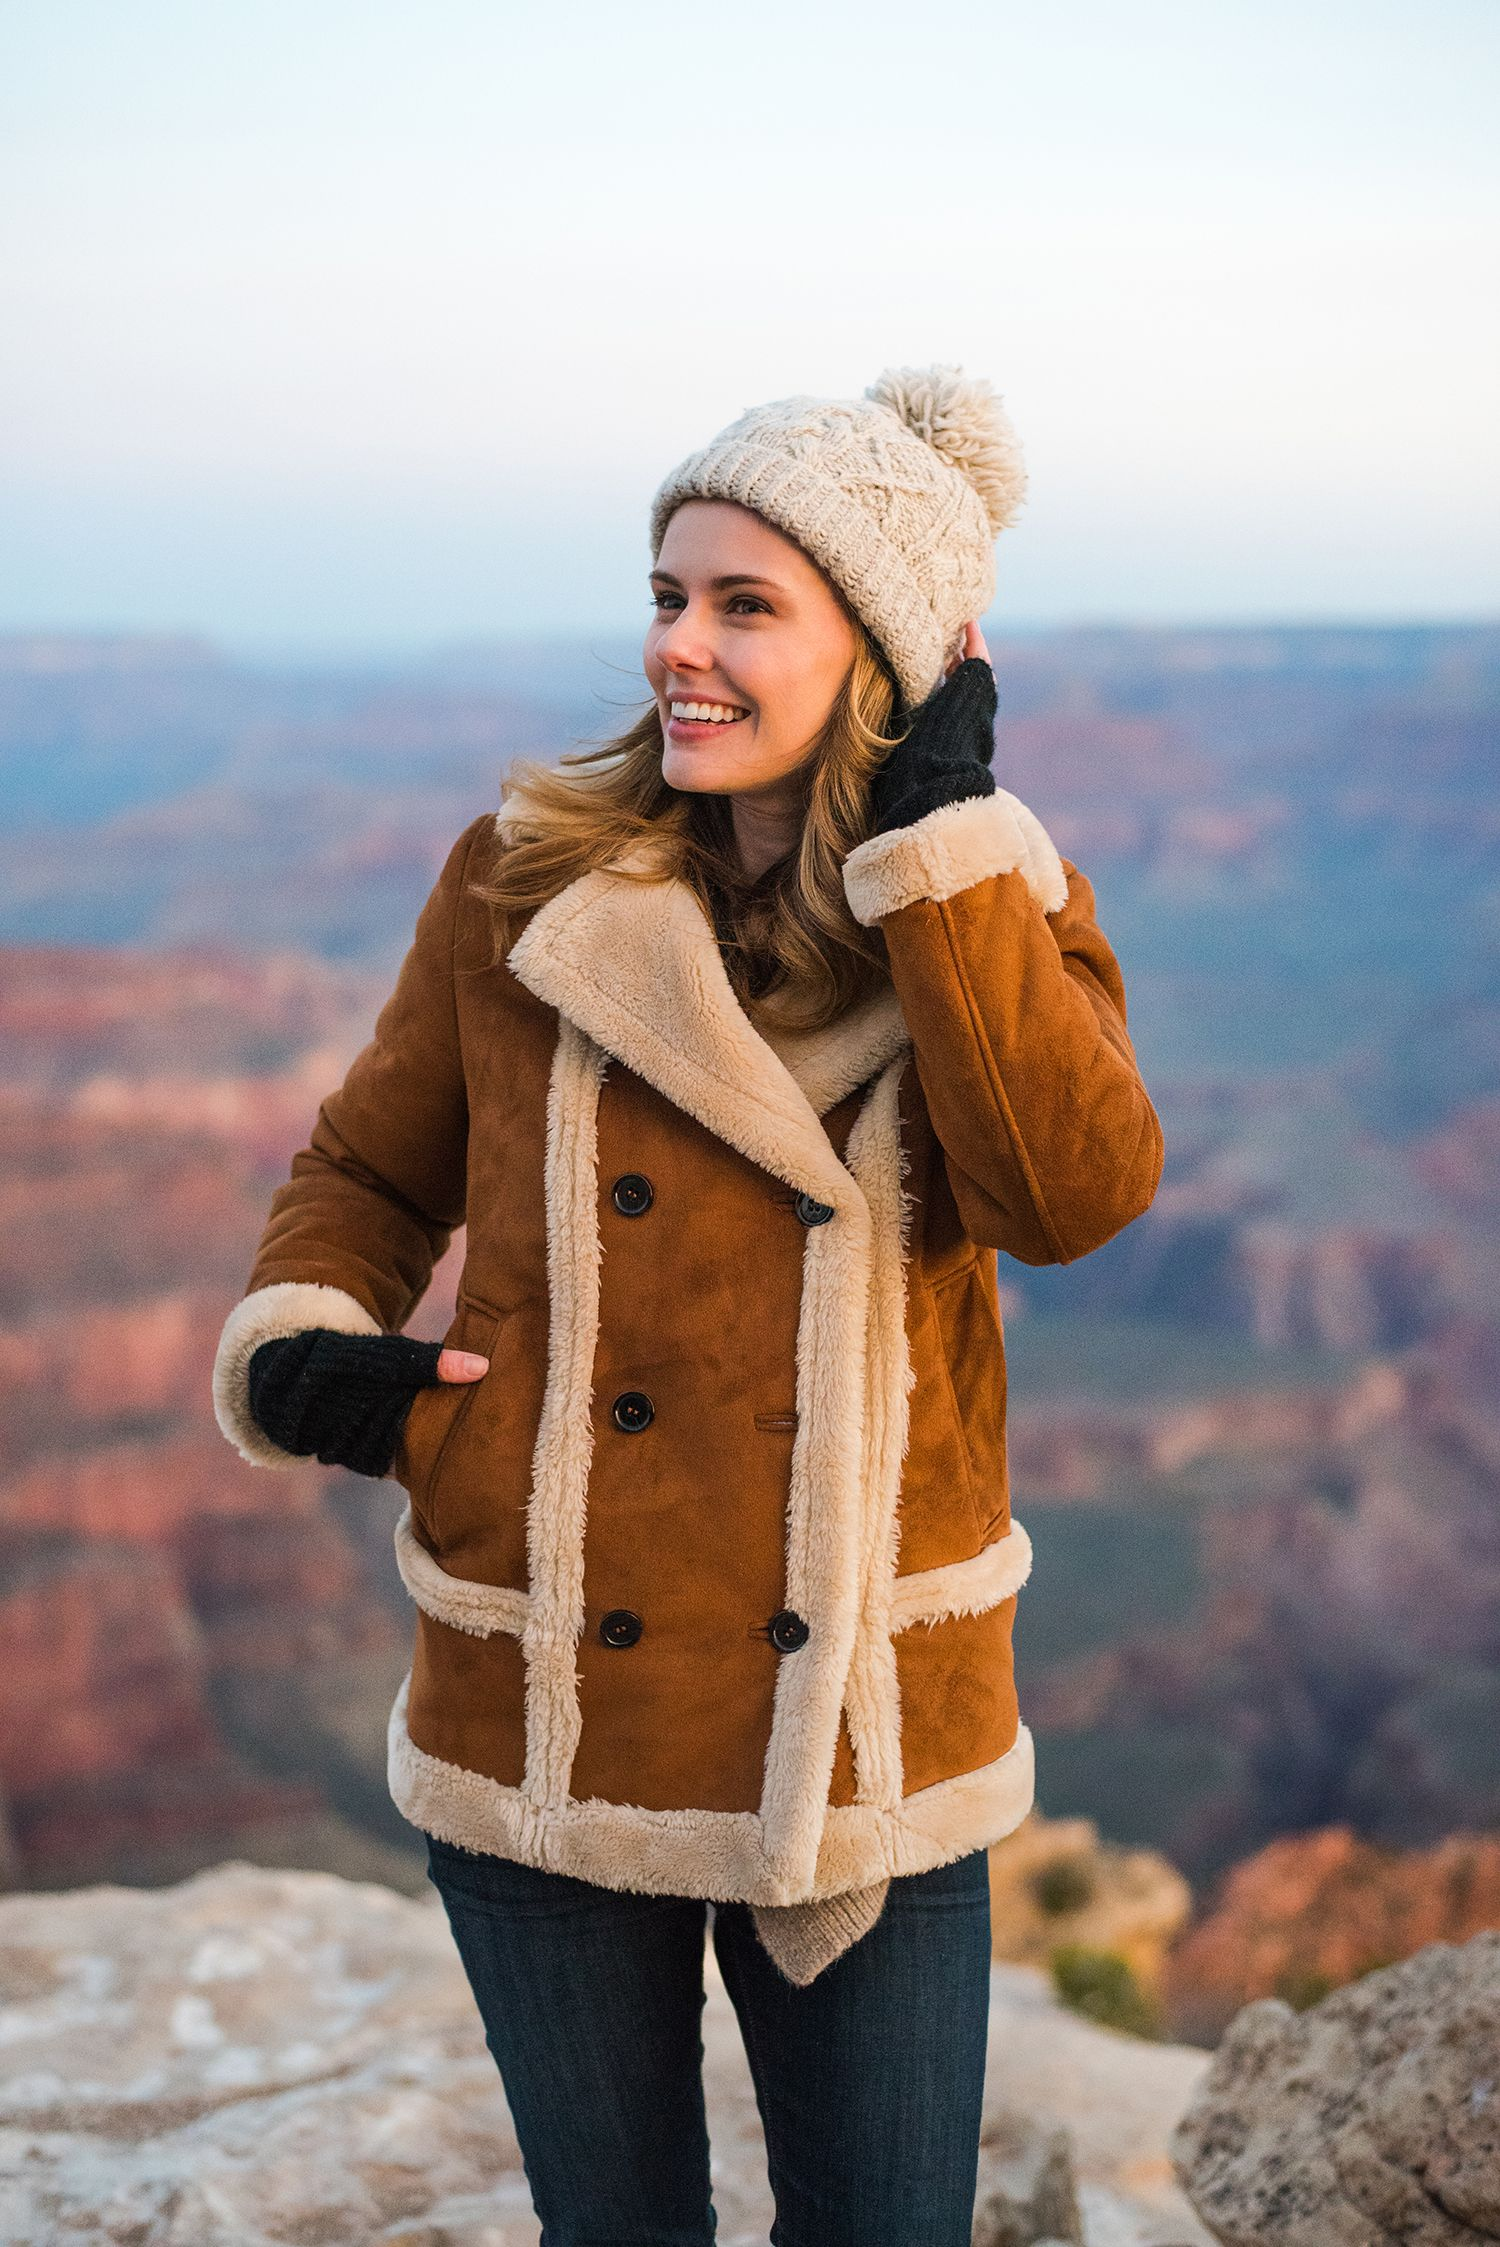 Topshop Coat Grand Canyon The A List Fall Winter